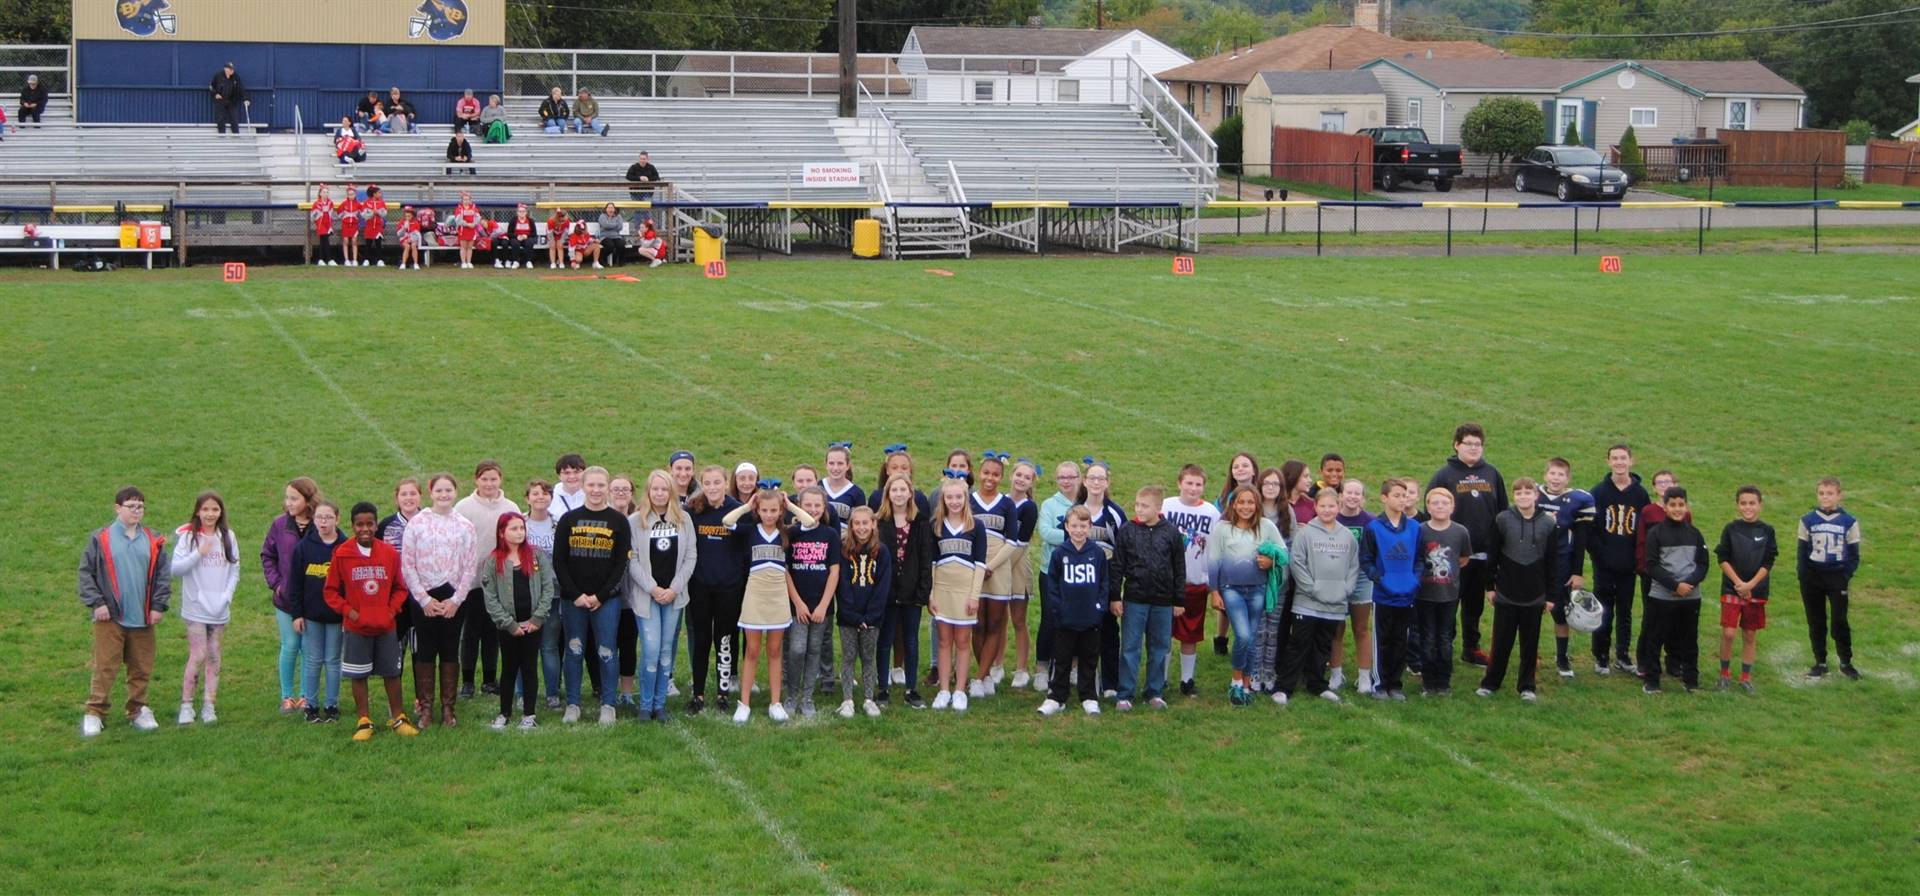 3rd Annual Academic Recognition Event at the BMS Football Game